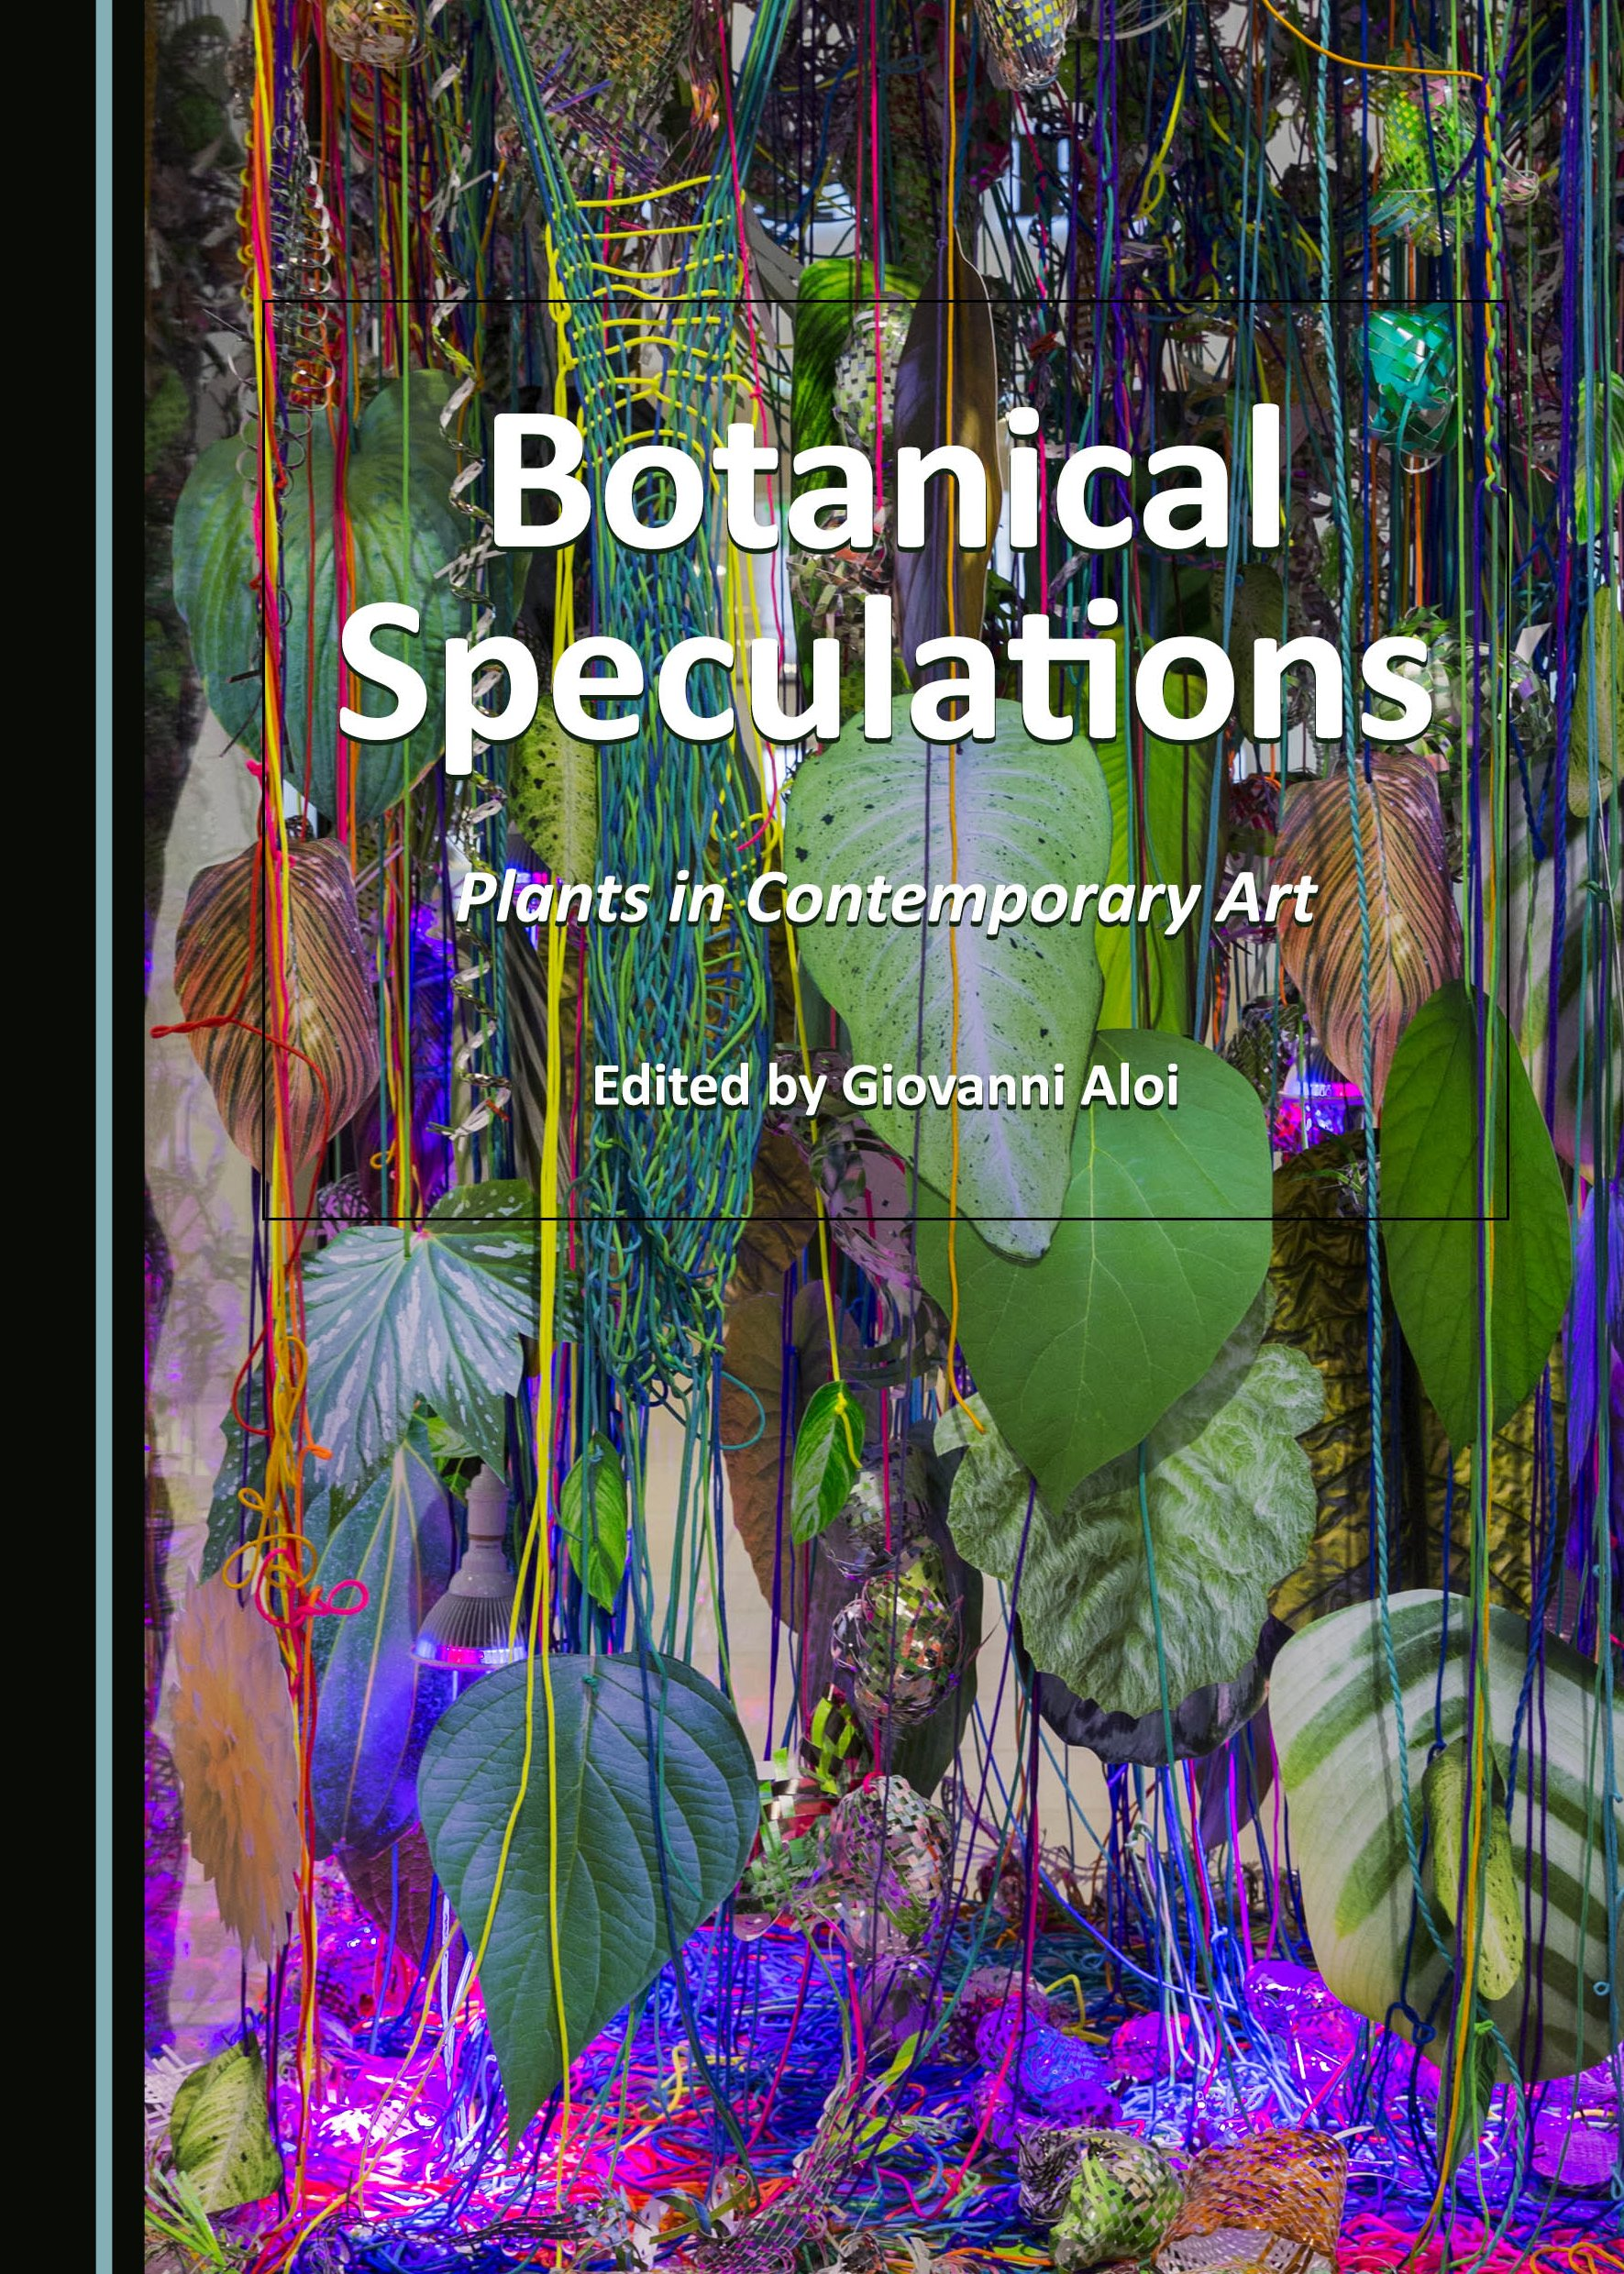 Botanical Speculations: Plants in Contemporary Art